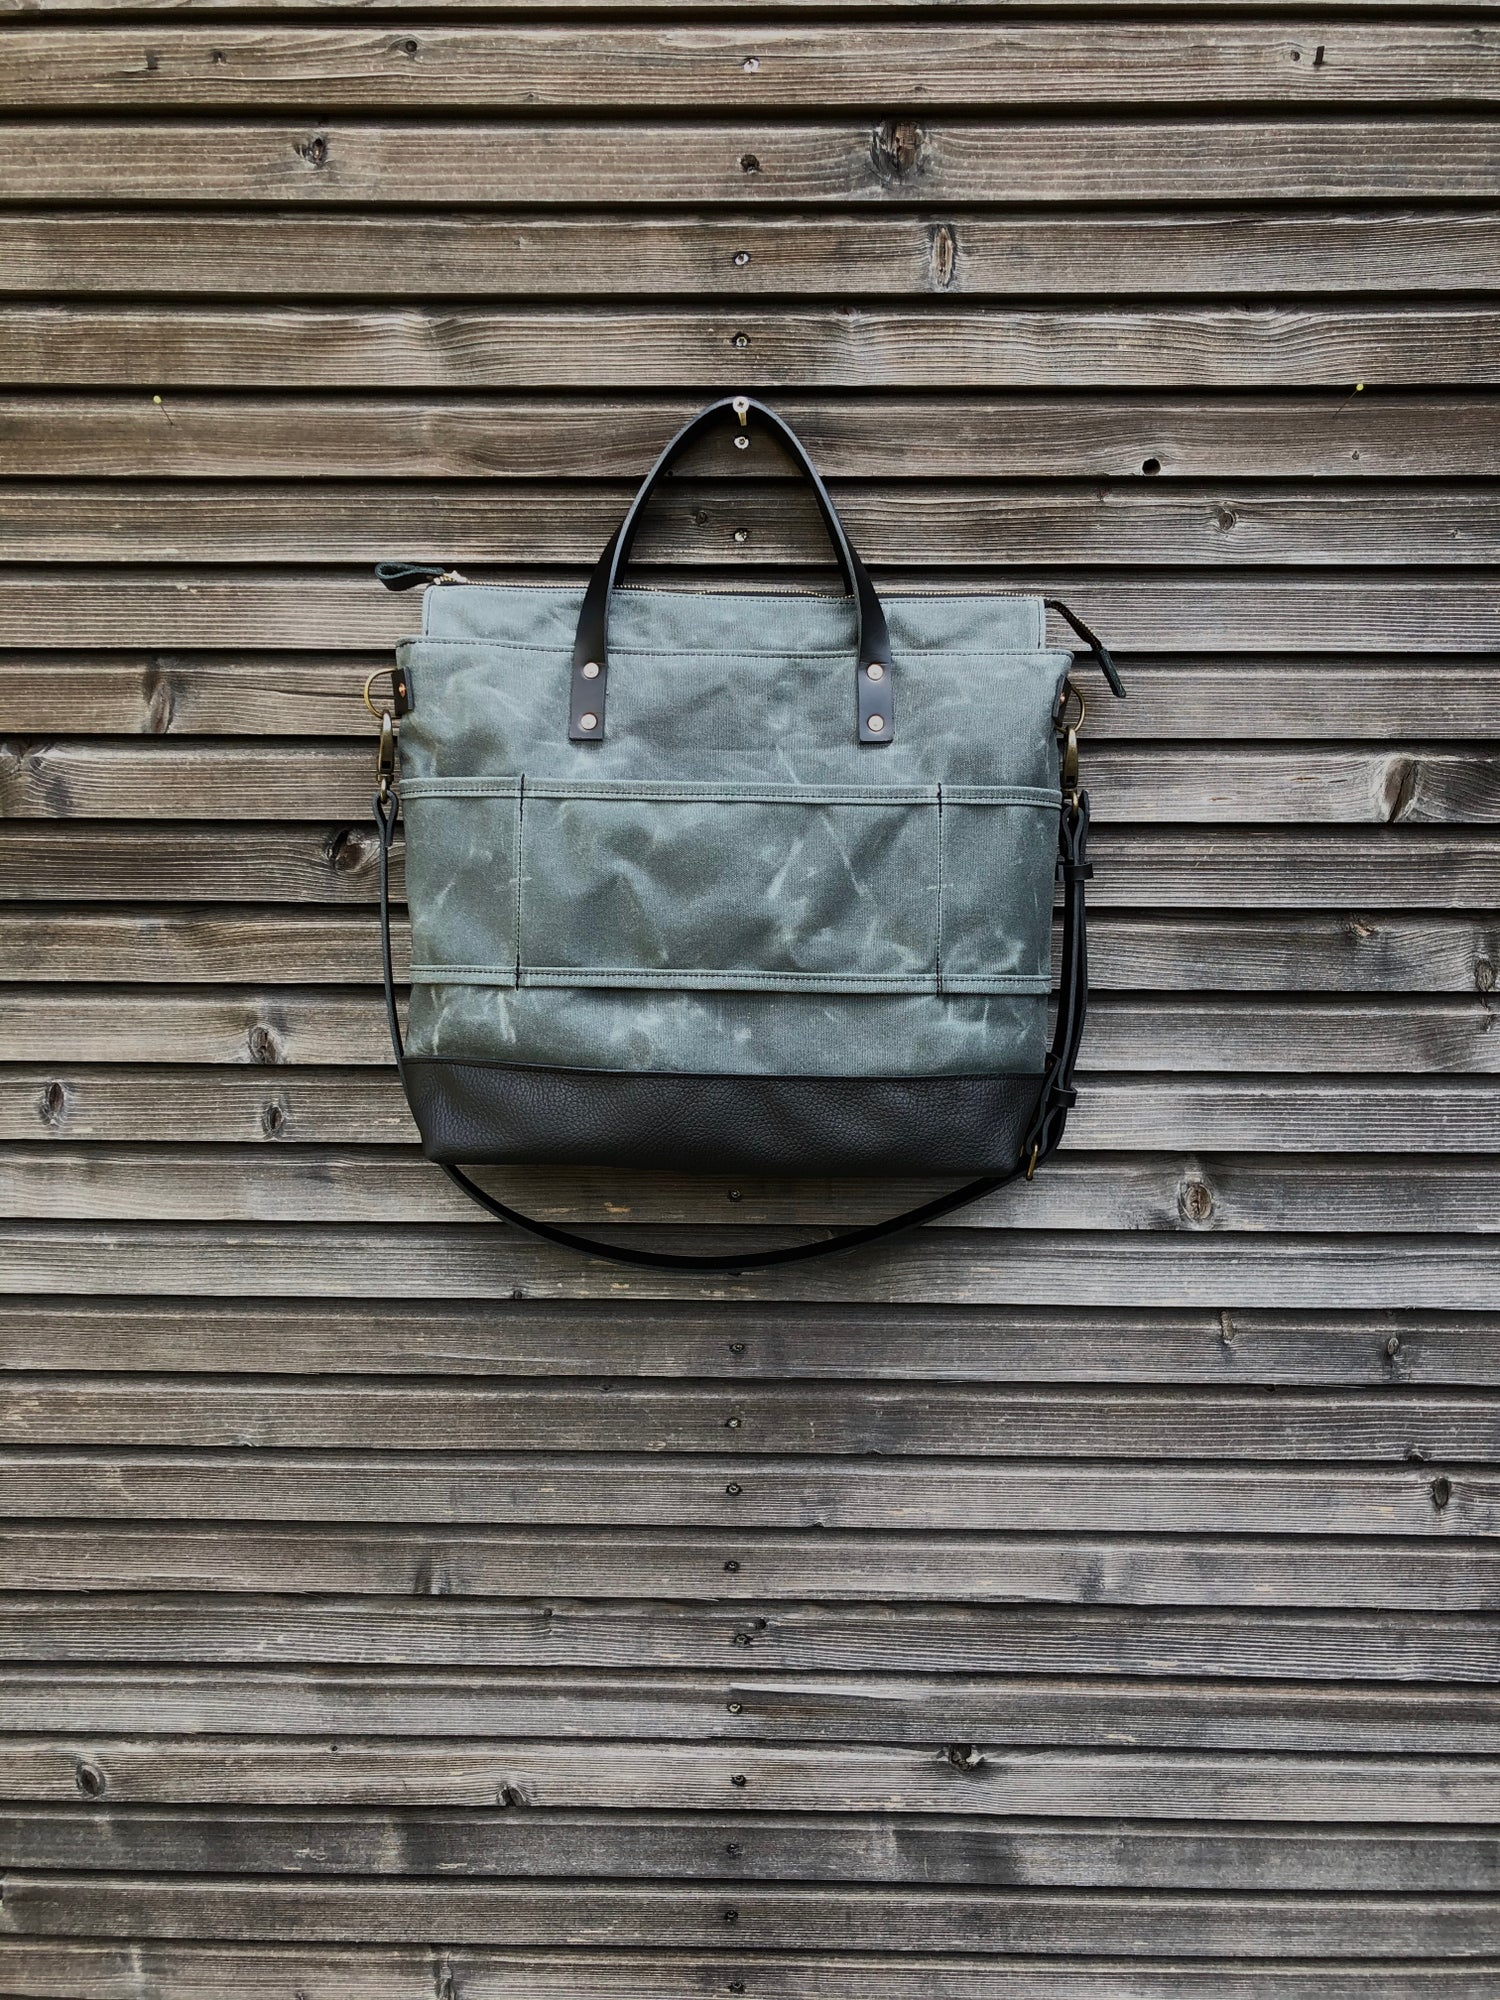 Image of Gray waxed canvas tote bag / office bag with luggage handle attachment leather handles and shoulder